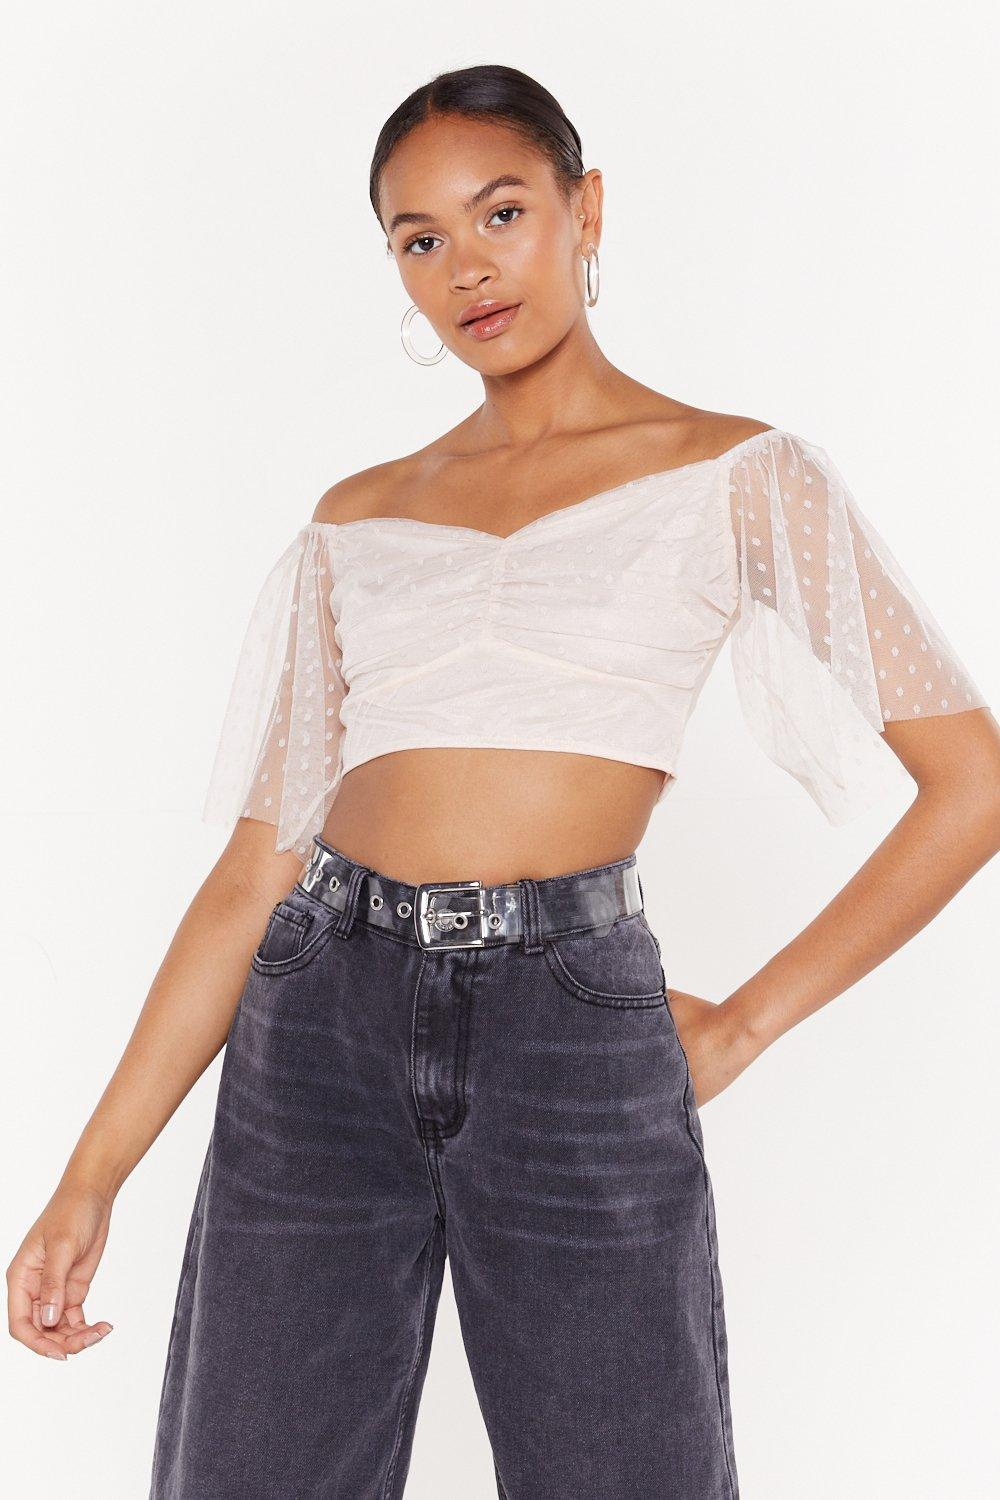 Dot Off The Press Sweetheart Crop Top by Nasty Gal